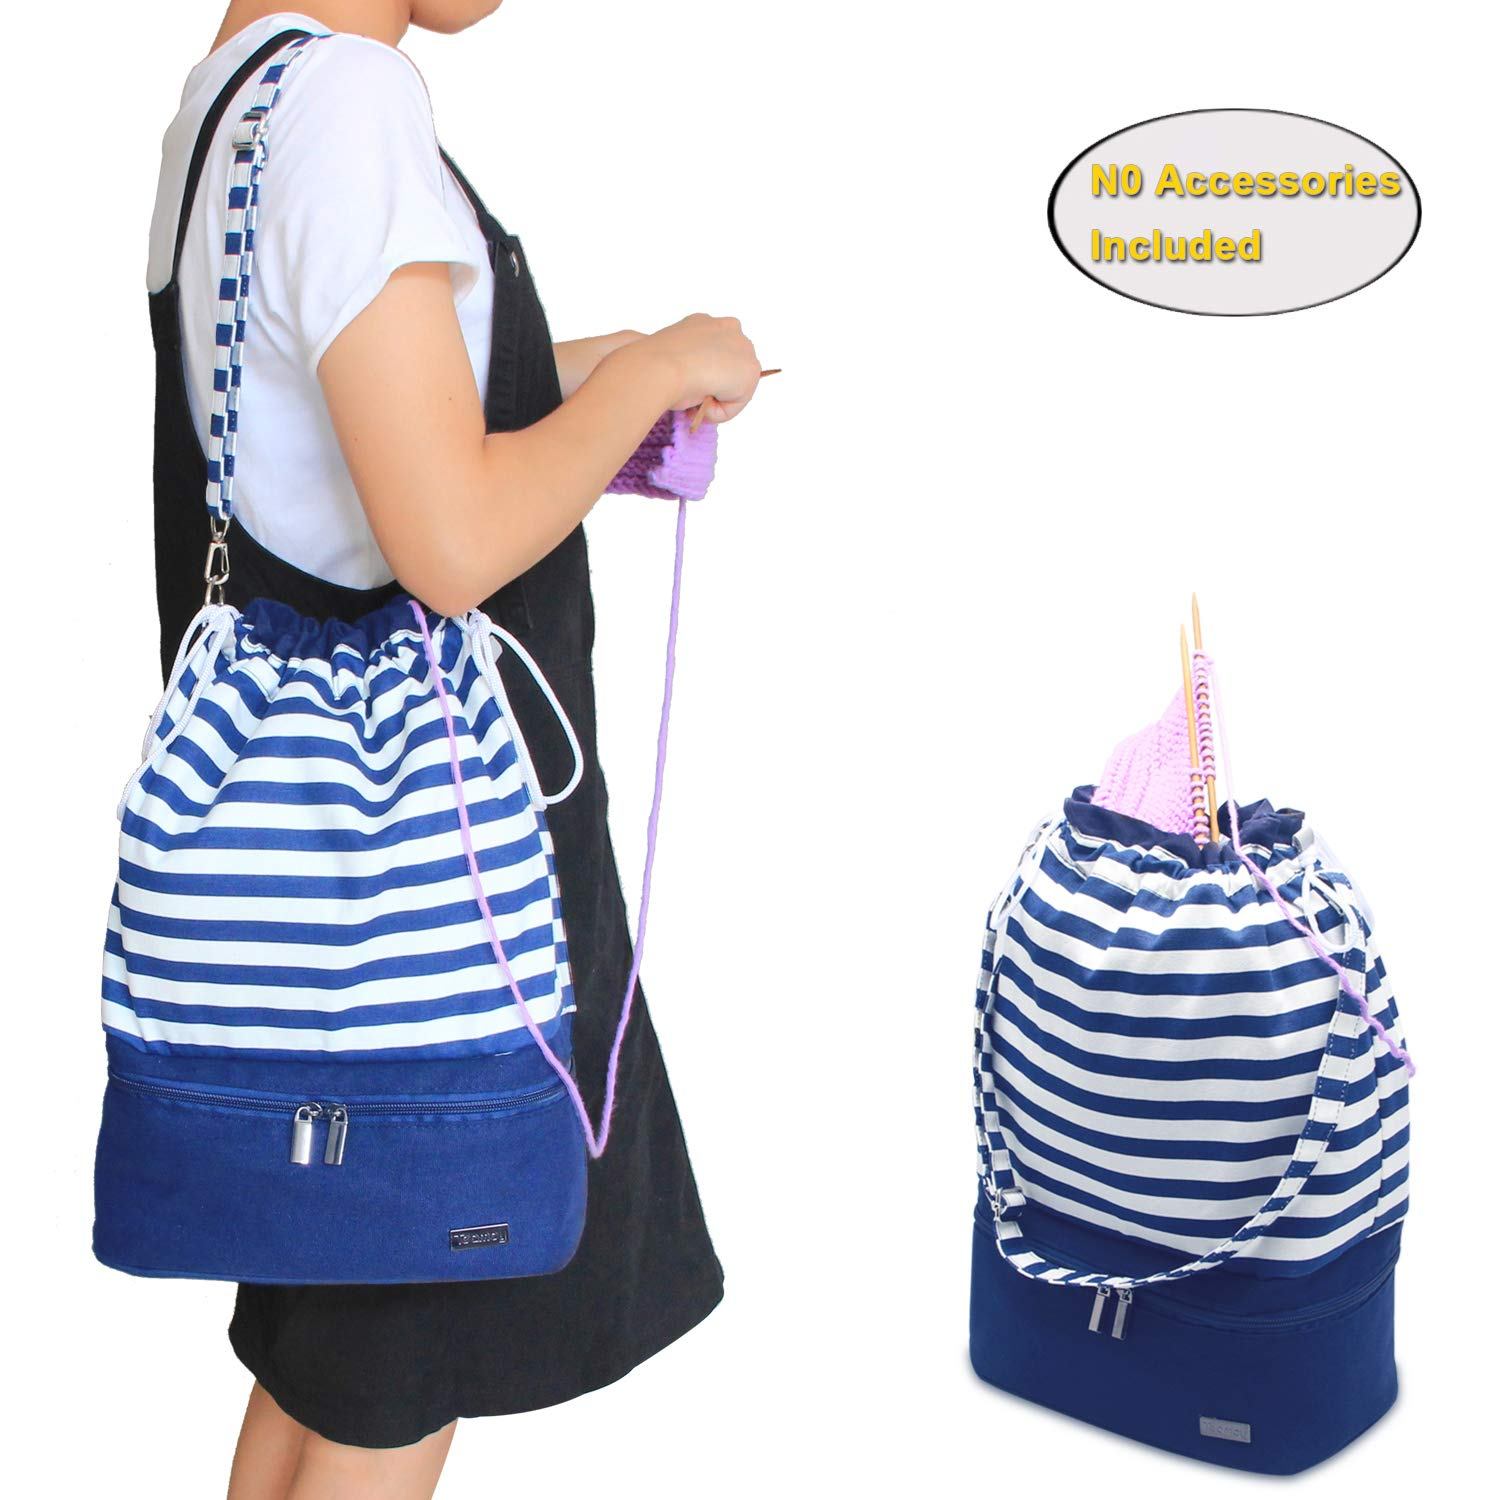 Teamoy Knitting Bag, Drawstring Travel Shoulder Tote Bag Organizer for Yarn, Unfinished Project, Knitting Needles and Accessories, Perfect for Knitting on The Go,Blue Strips, No Accessories Included